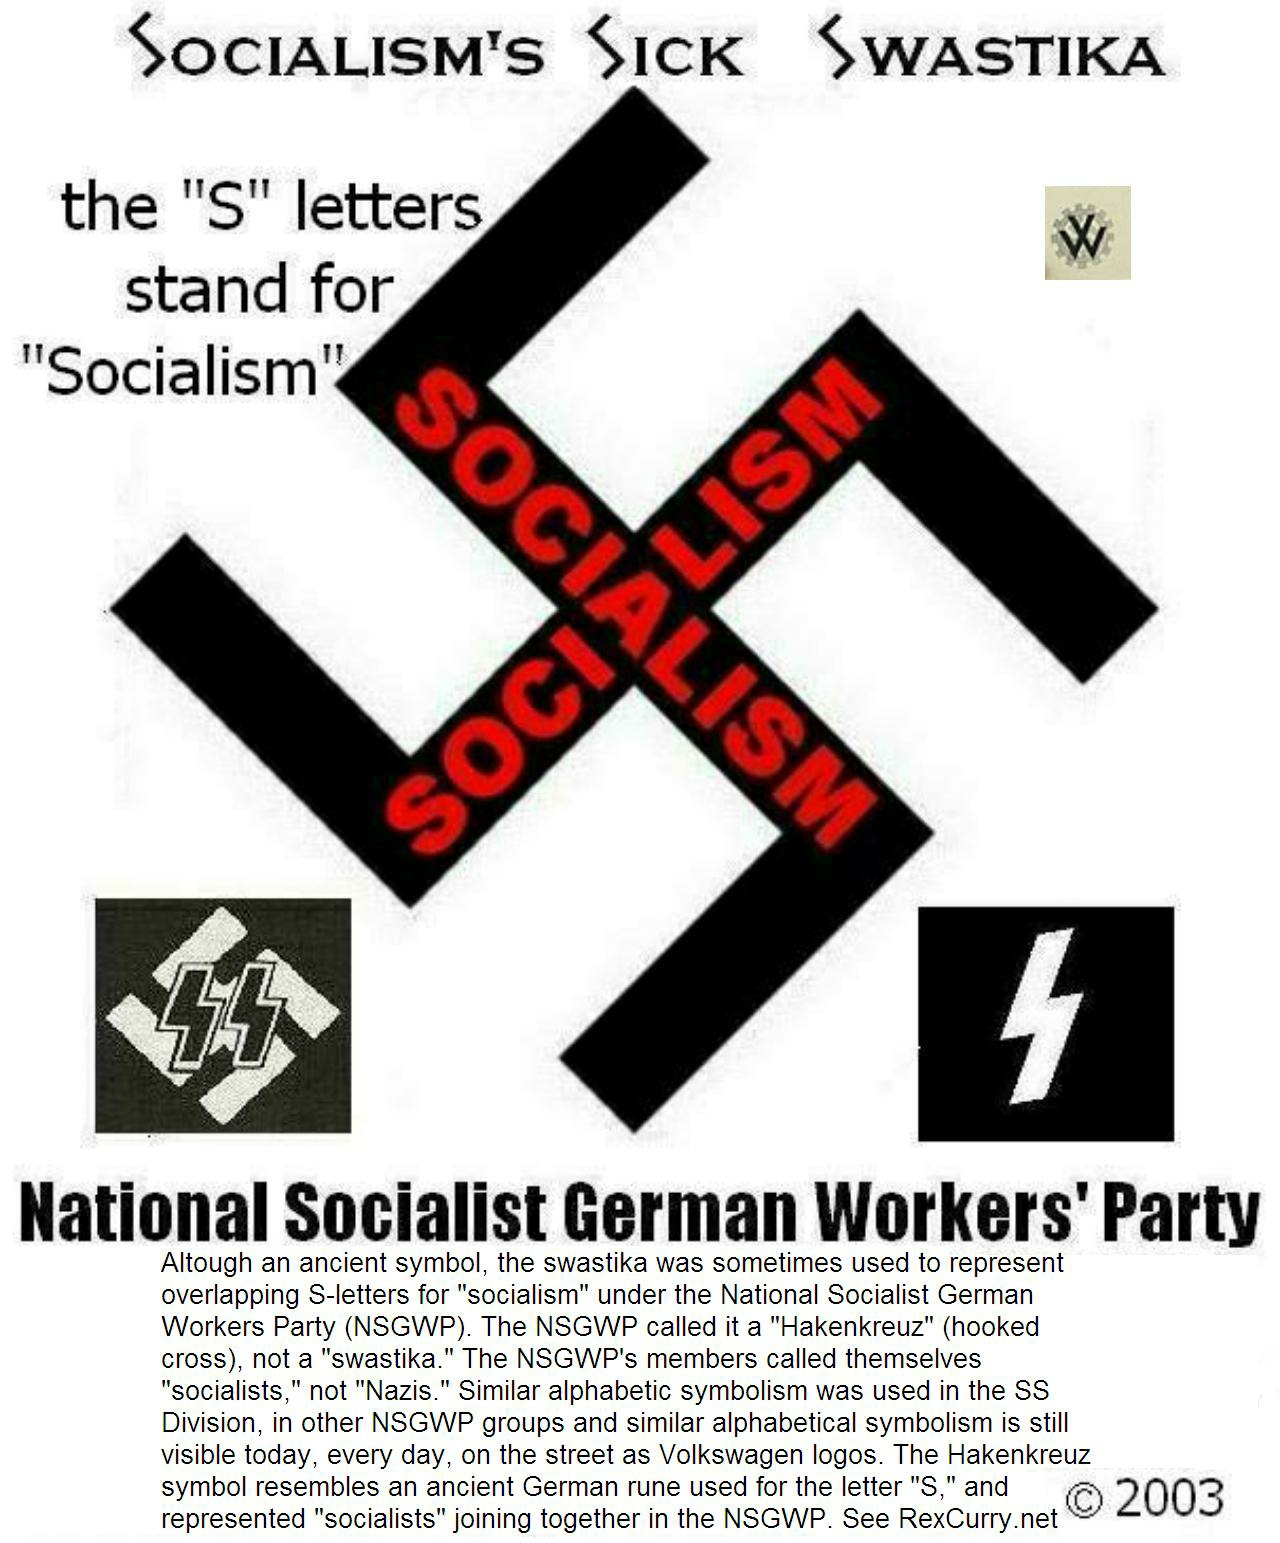 Sieg rune & runology. Swastika = S-letters for socialism under Nazis